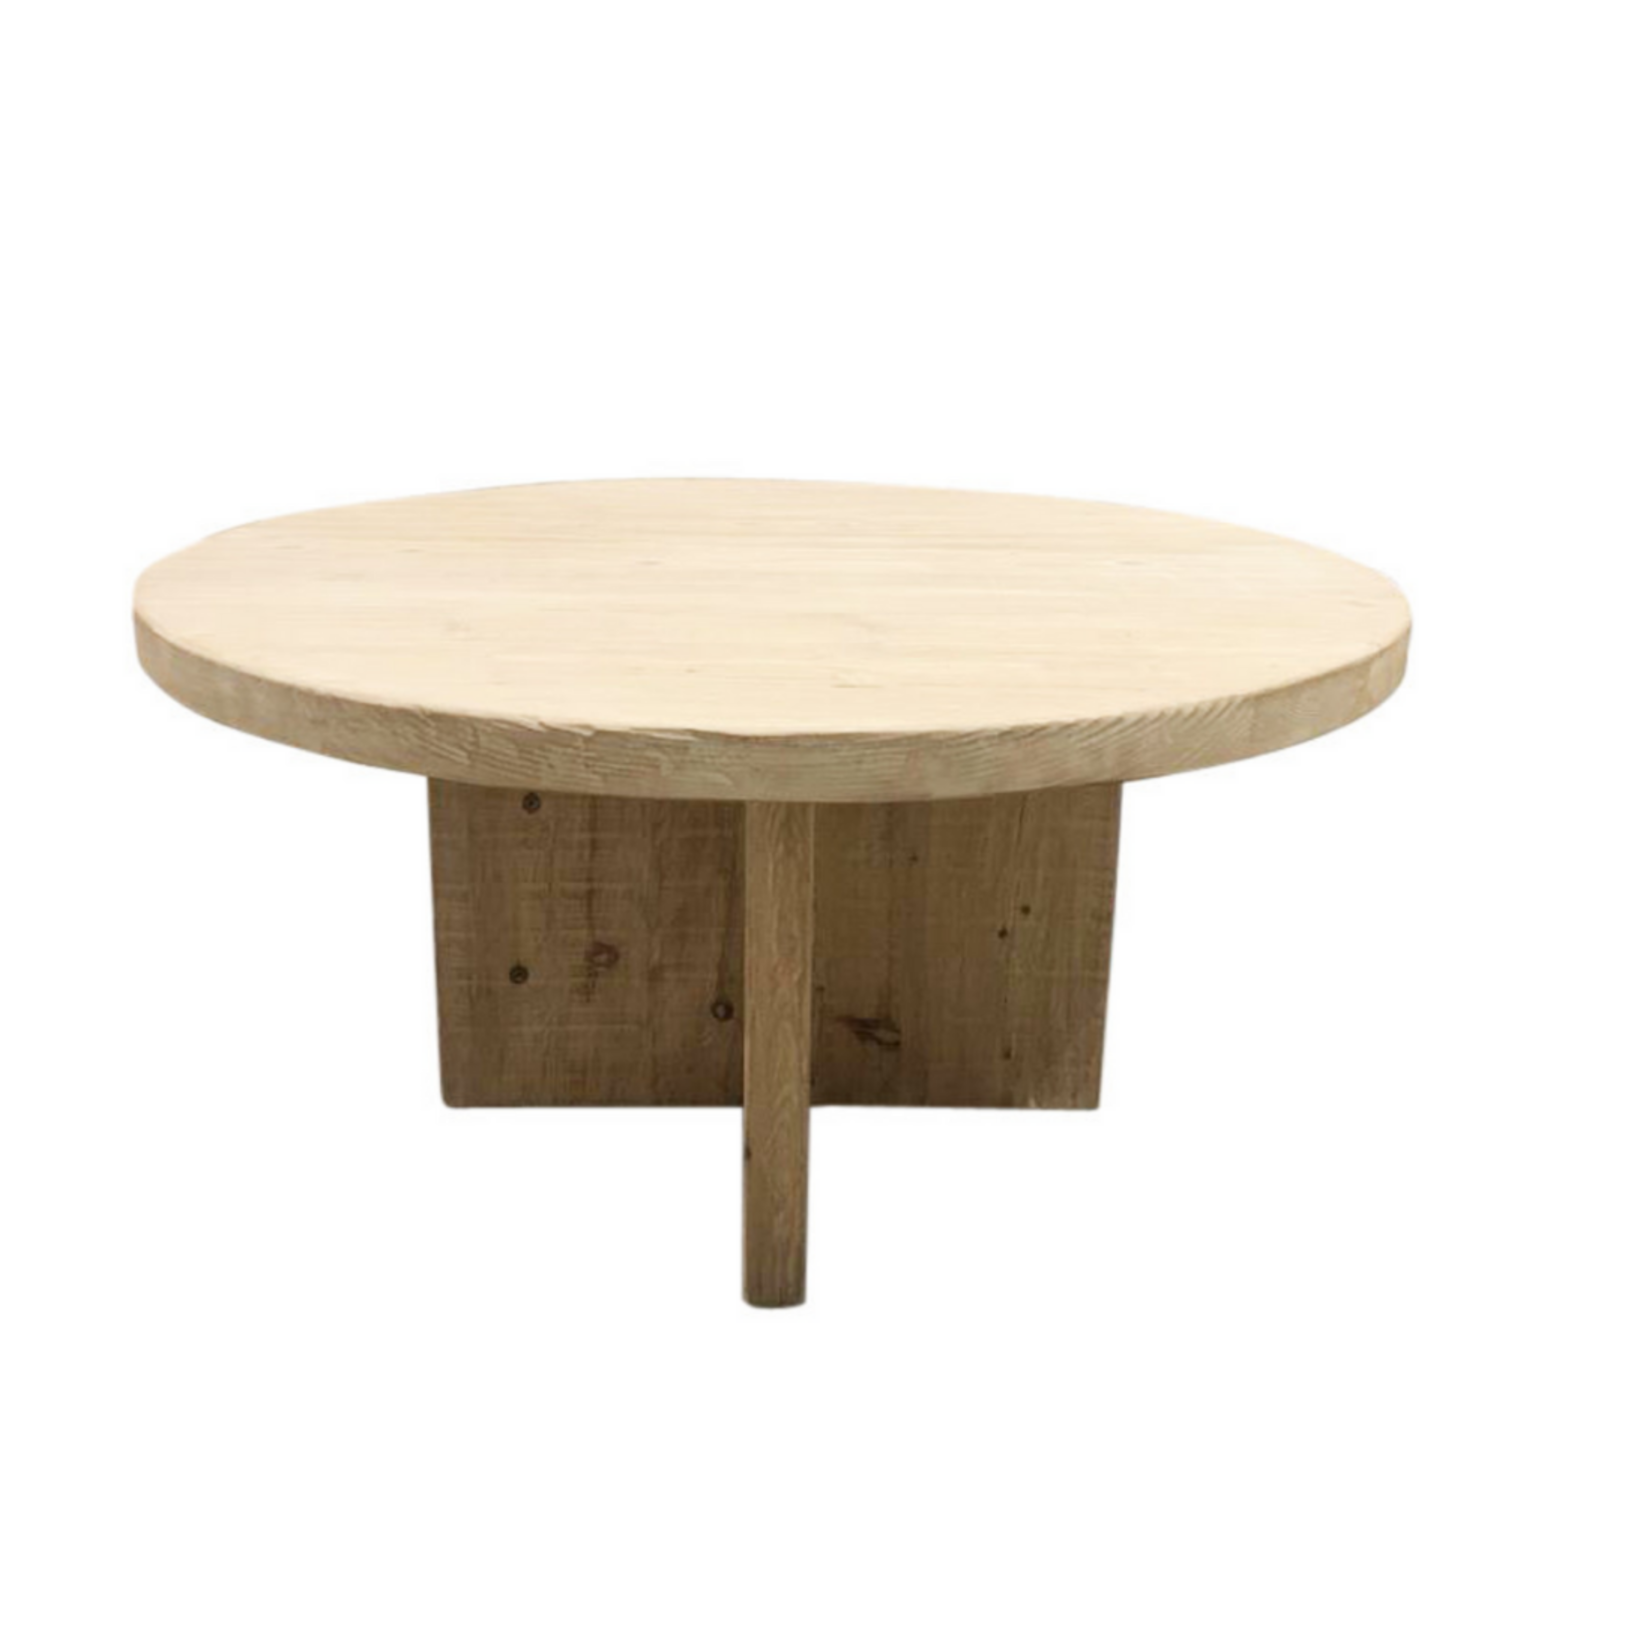 Wyld Blue Home Hudson Round Dining Table